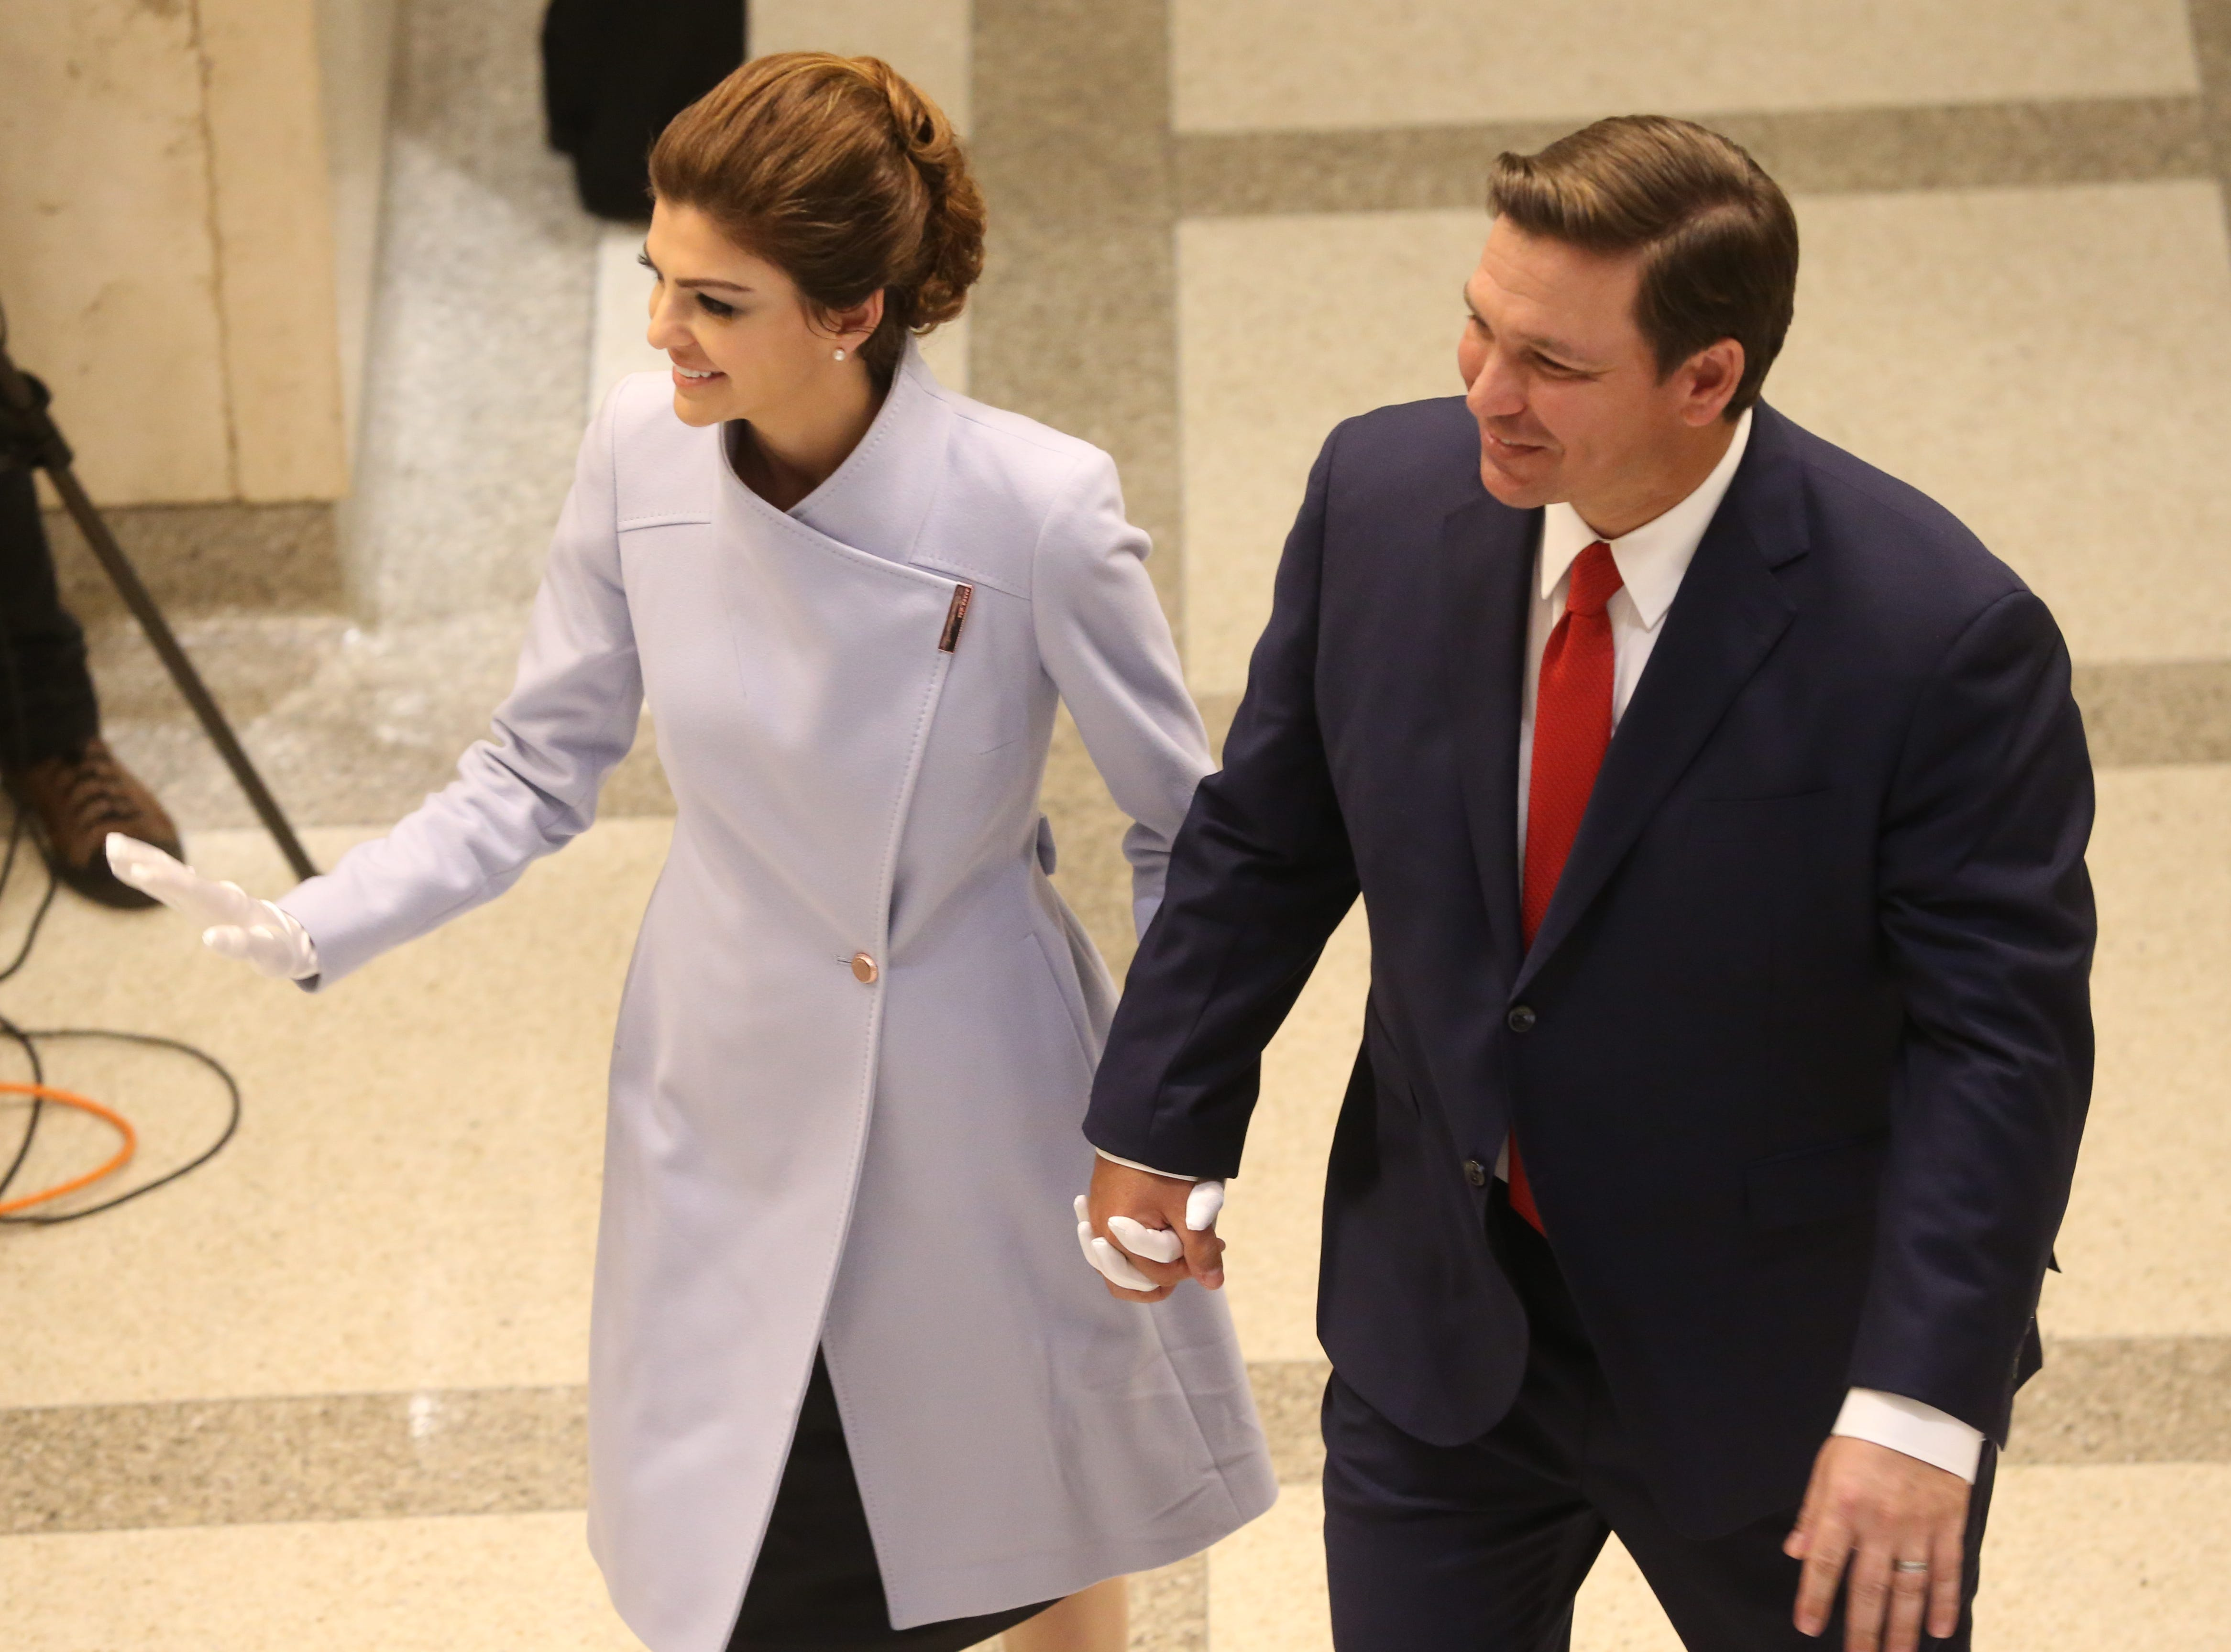 For the first time in Inaugural history, Gov. Ron DeSantis addresses FloridaÕs Legislative leaders and Cabinet officials. DeSantis discusses his plans to work with our stateÕs elected leaders to achieve a Bold Vision for a Brighter Future, Tuesday, Jan. 8, 2019. First lady Casey DeSantis waves to guests as she holds hands with her husband, Gov. Ron DeSantis.